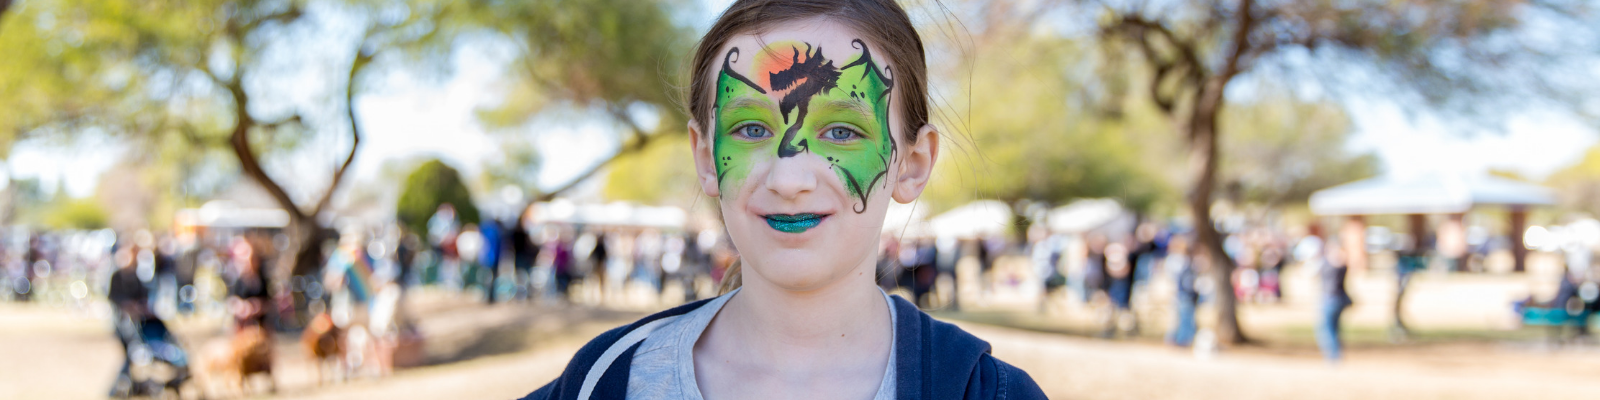 Arts in the Parks Face Painting